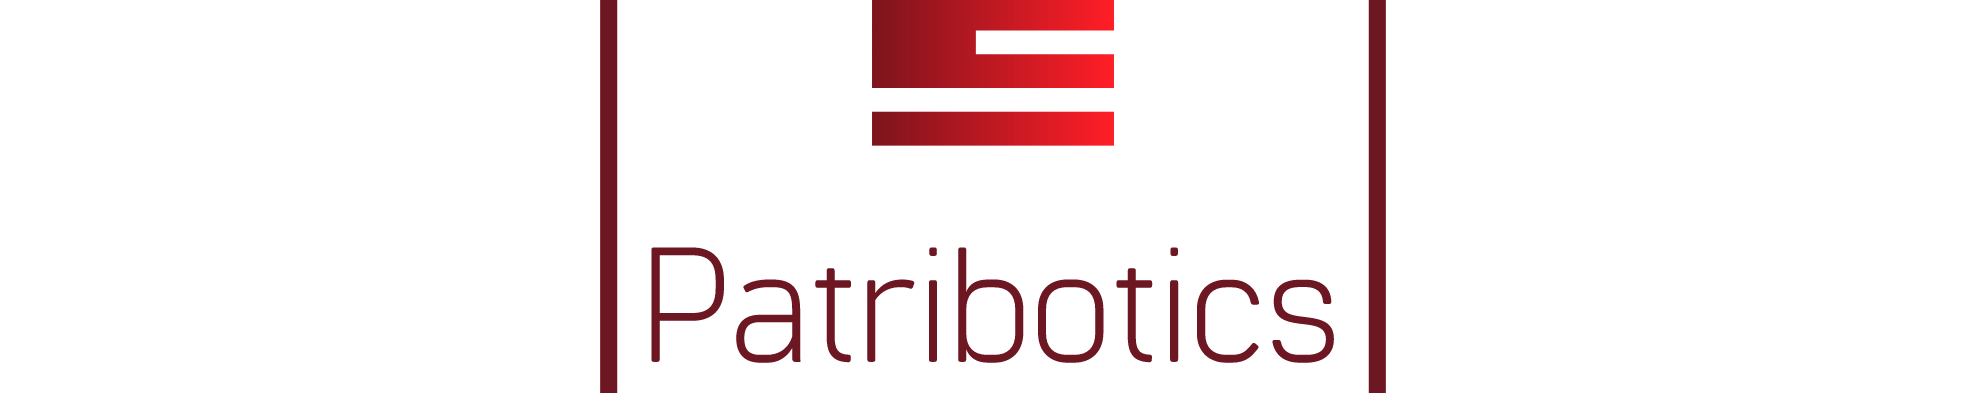 Patribotics